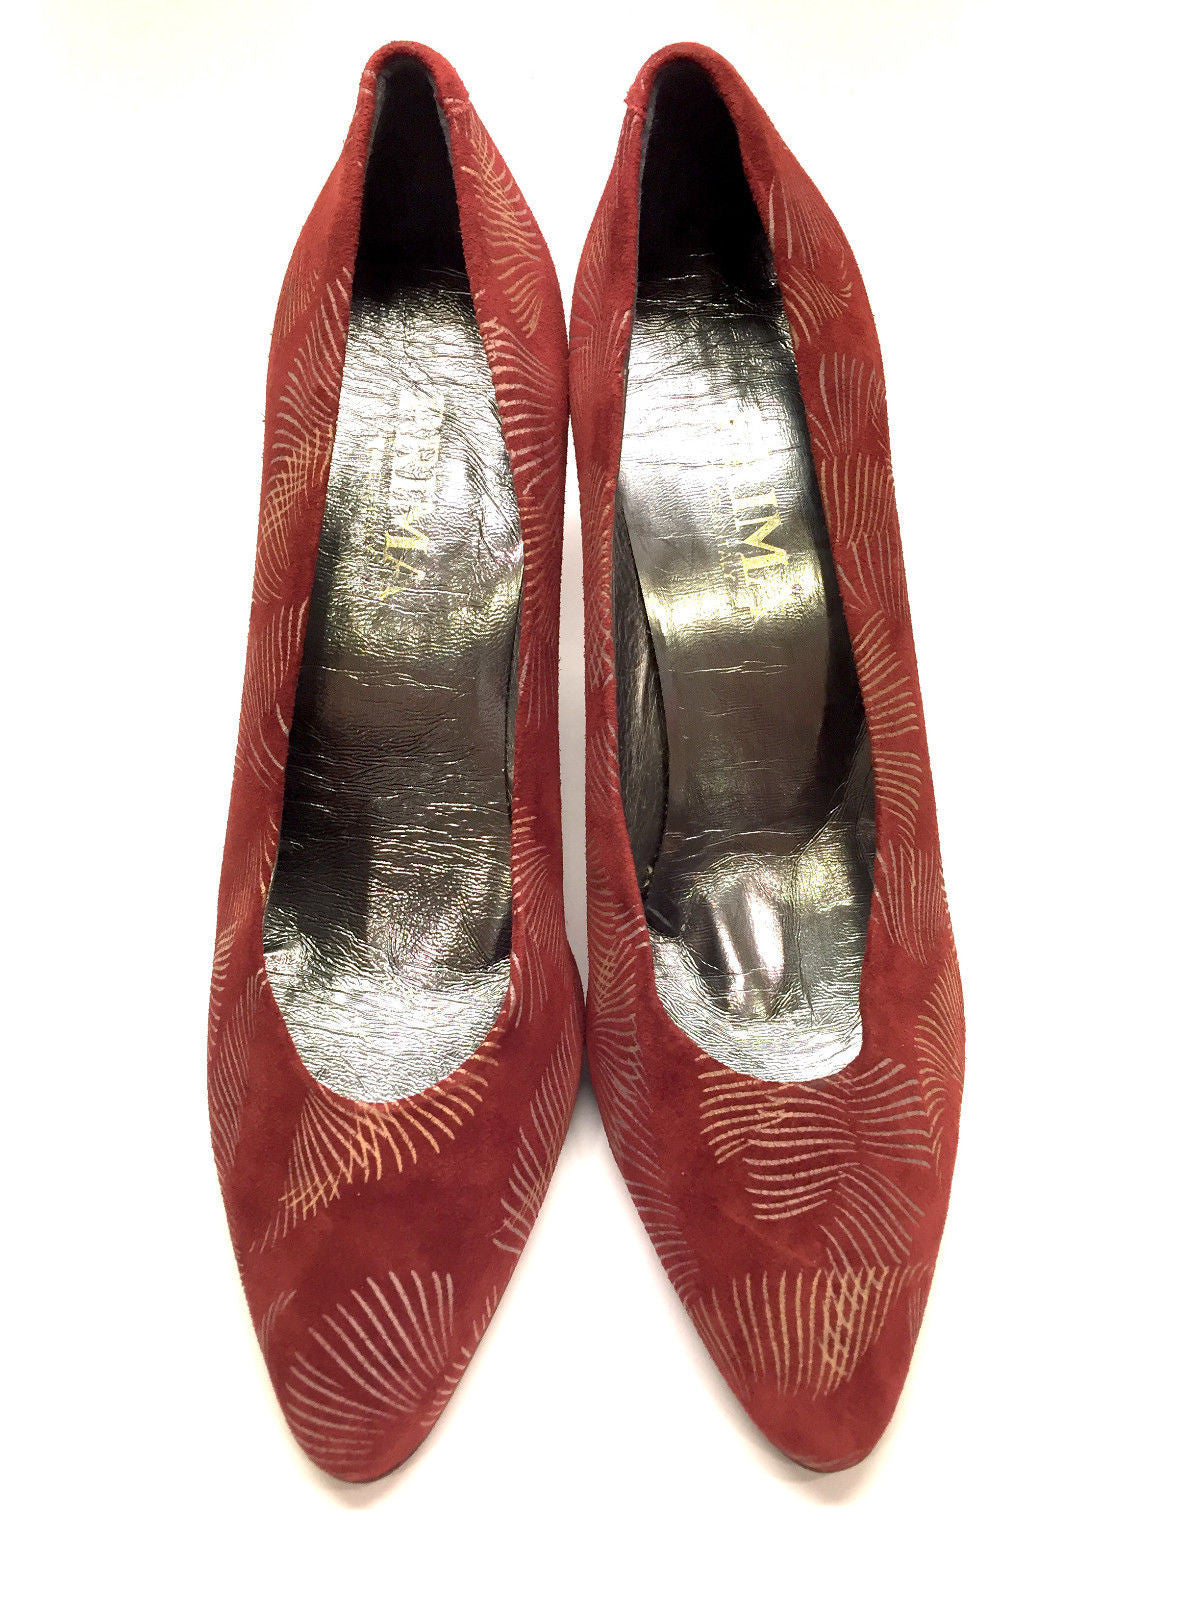 red designer pumps 3e9t  PRIMA Italy Red Stenciled Suede Heel Pumps Size: 8